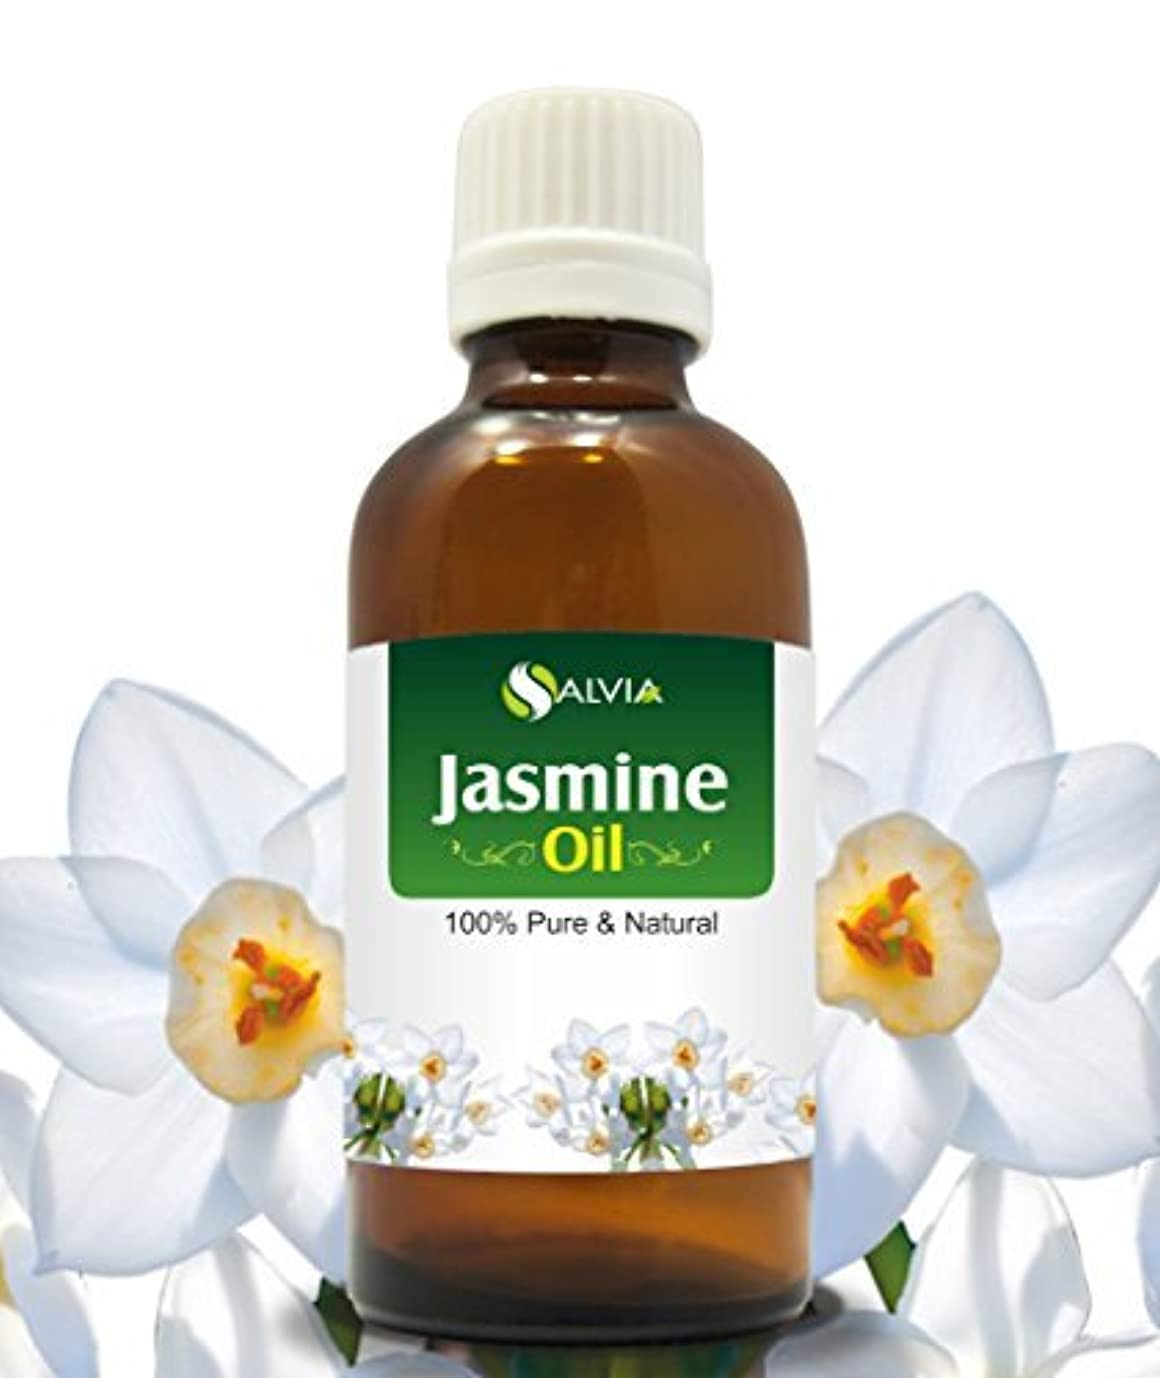 戦争薬を飲む援助するJASMINE OIL 100% NATURAL PURE UNDILUTED UNCUT ESSENTIAL OILS 15ml by SALVIA